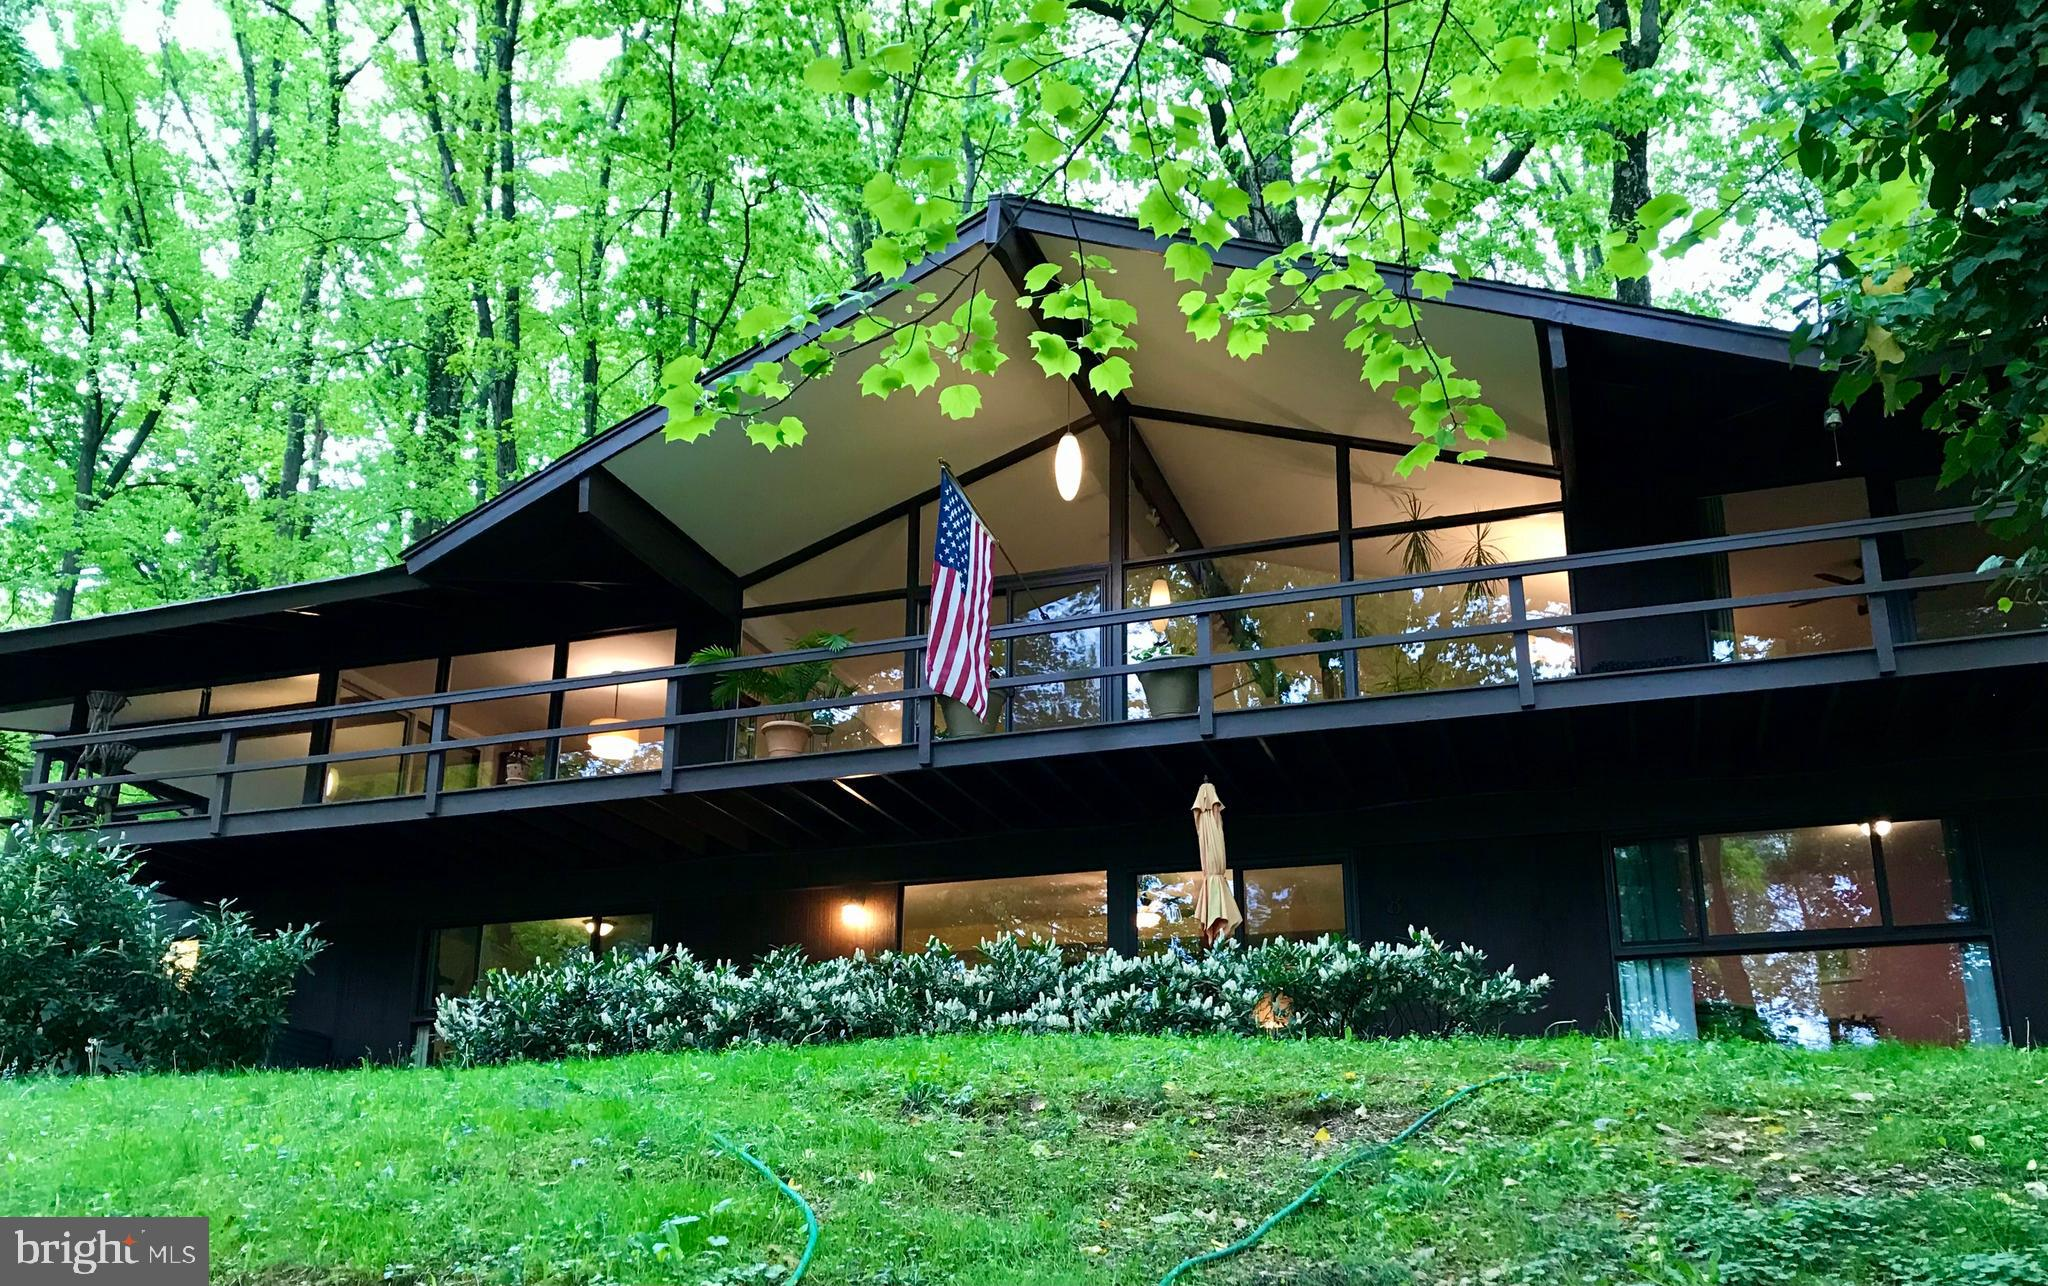 """Live in an architectural gem on a cul-de-sac in Wayne!  This stunning mid-century modern home was designed by renowned Philadelphia architect Robert McElroy, known for melding the natural surroundings into his airy floor plans. This unique home has great flow and is impressively sited on a wooded .71 acre lot. It has been meticulously restored and maintained by its current owner. Walls of glass in the living room, dining room, kitchen, family room and bedrooms render the home sundrenched and exceptionally bright, with the natural light playing on the home's interiors. The panoramic views in all directions make you feel as though you are living in a tree house! Vaulted ceiling with exposed beams in the living area with floor to ceiling glass on 3 sides, a free standing steel fireplace original to the home, expansive covered patio off of the kitchen and dining room sliders for total relaxation,  easy outdoor living  and  entertaining, and one of only 10 homes on the cul de sac. Award winning Tredyffrin-Easttown schools, low taxes,  and only minutes to the centers of Wayne and King of Prussia for shopping and dining. Convenient to Radnor train station and all major routes for commuting.   Main floor owner suite for one level living.  All hardwood floors on main living level and master bedroom has sliders to the deck. Three generously sized bedrooms on the lower level along with a family room/den/office/study, the second bathroom, an additional patio for more outdoor pleasure, and a mud room/laundry room leading to the 2 car attached garage.  Modern eat-in kitchen has 42"""" cabinets with undermount lighting, granite counters, stainless steel appliances (including built in microwave and French door refrigerator/freezer) and recessed lighting. Master bathroom boasts a large walk in shower, granite counters,  and double sink vanity. Second bathroom is also updated and has a tub with shower and large linen closet. Beautiful grounds, a wraparound deck that runs the length of t"""